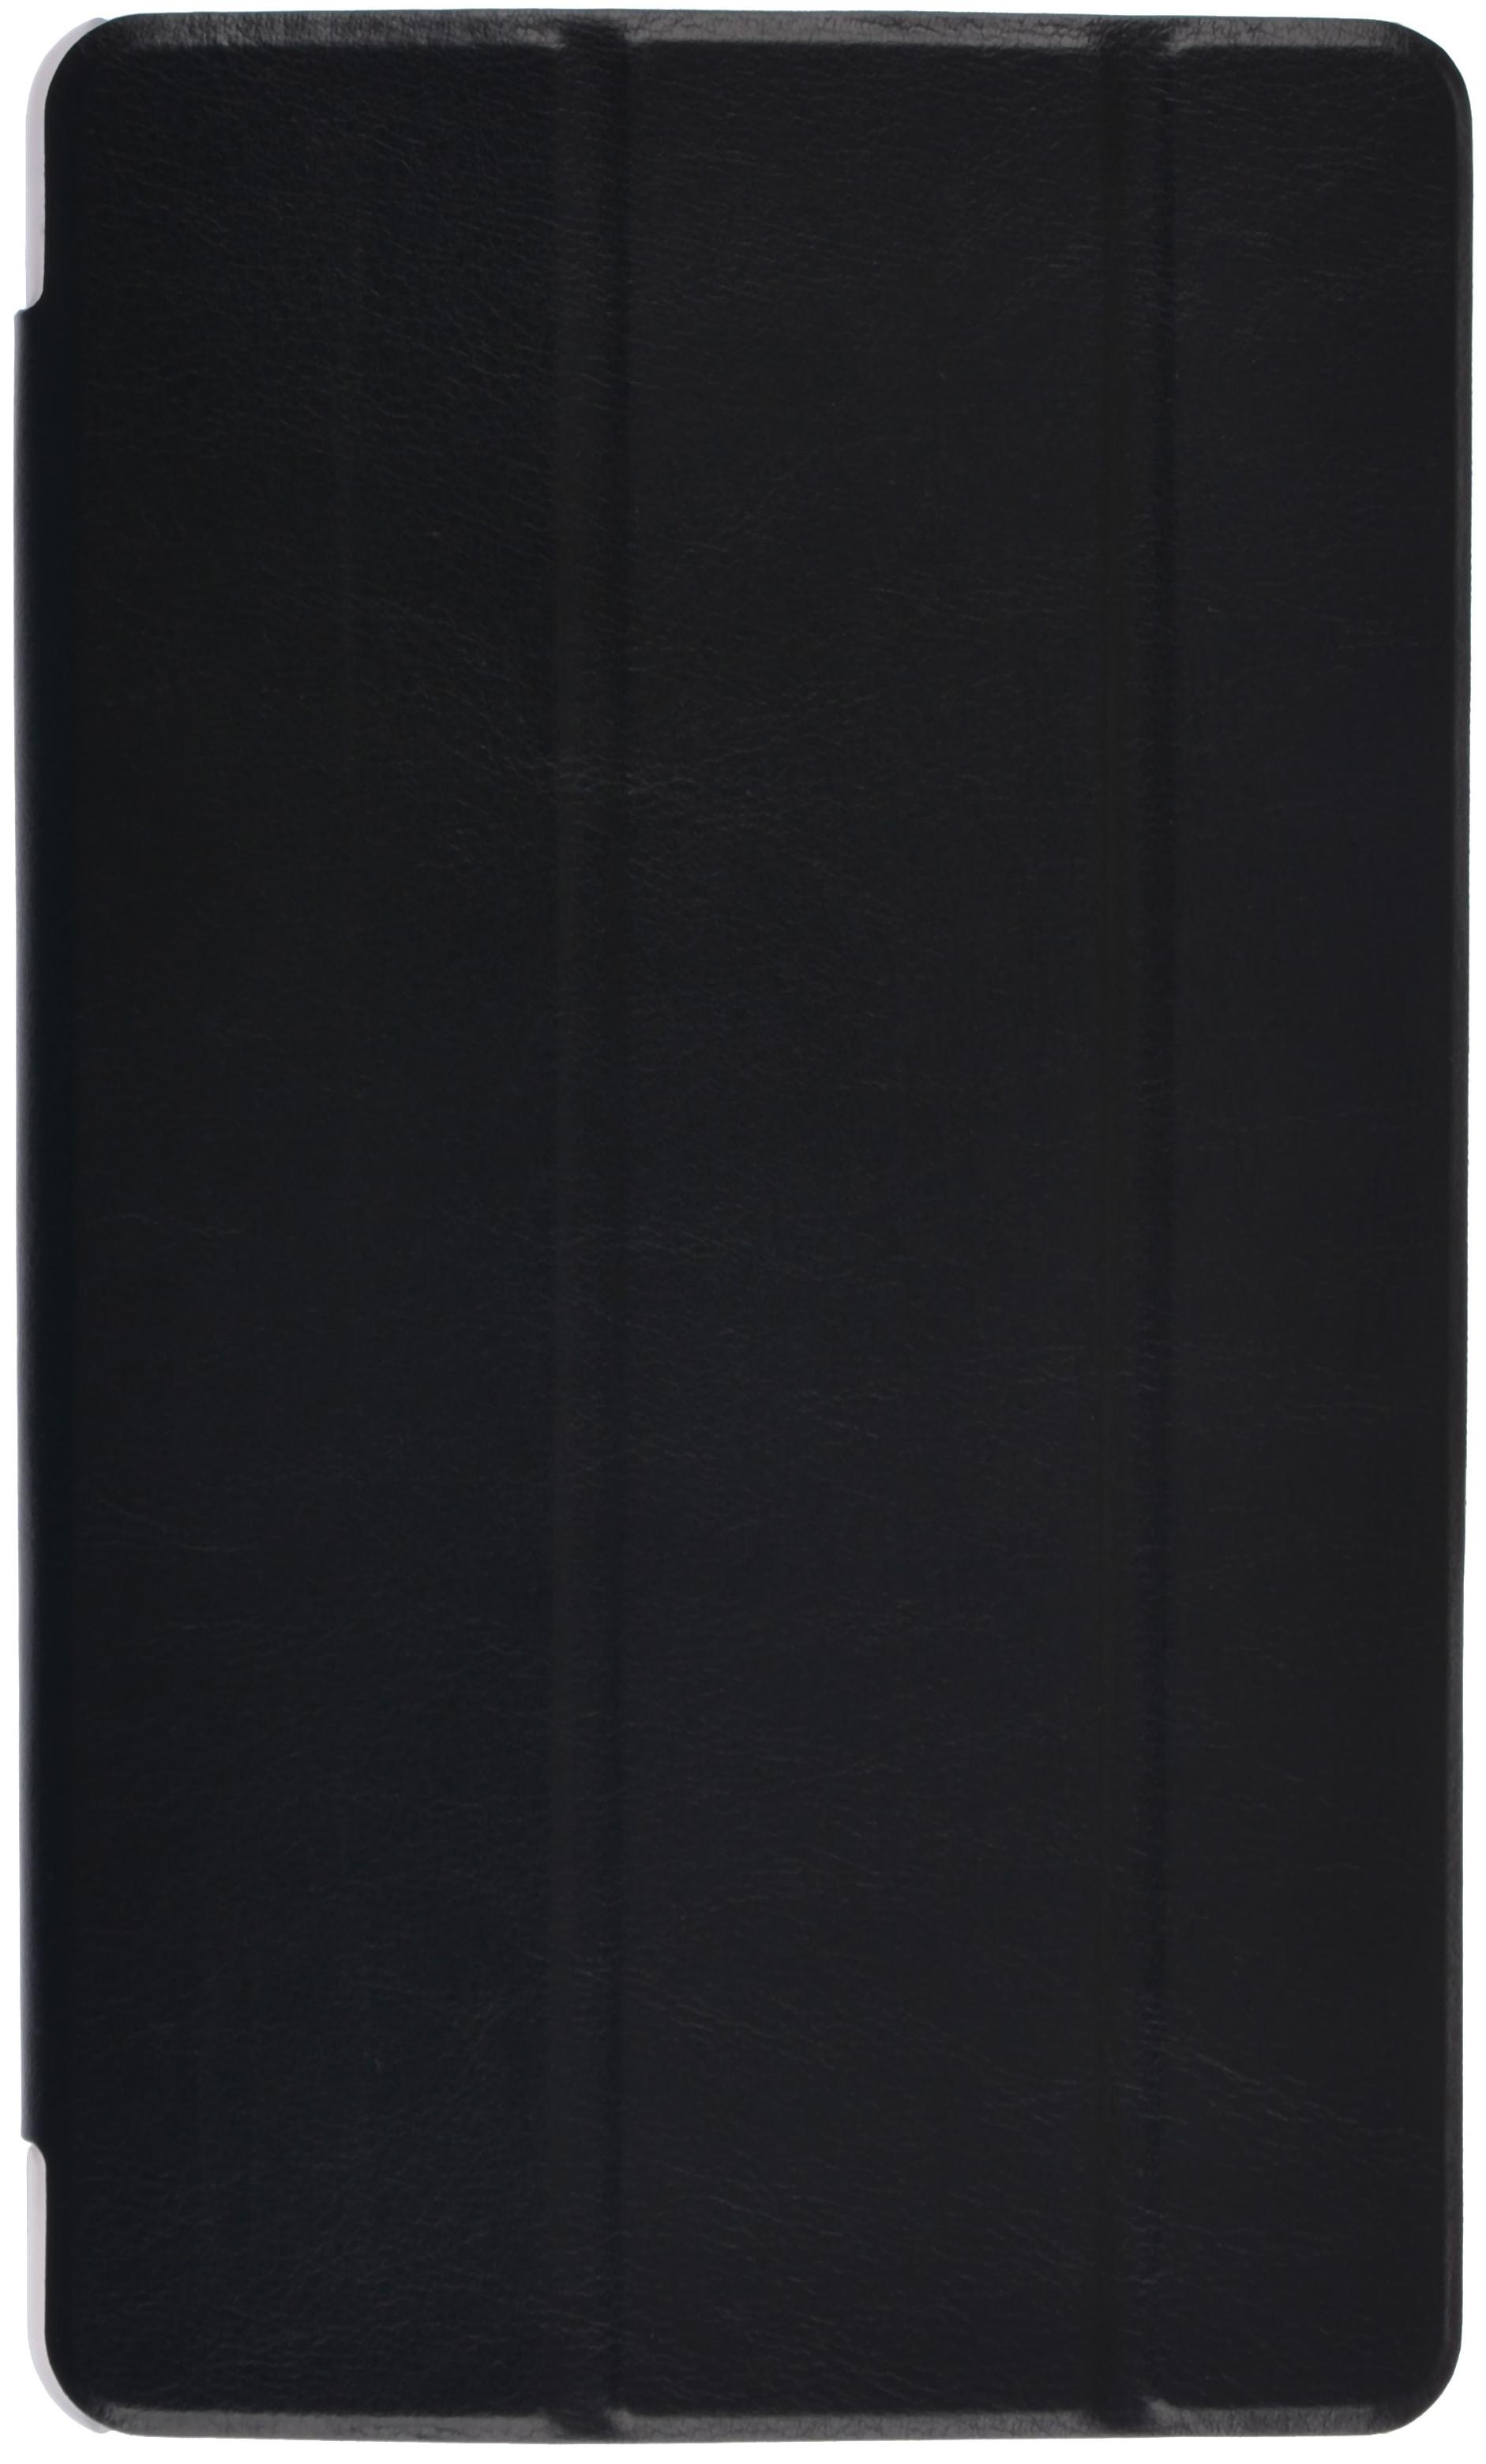 Чехол ProShield slim case для Huawei MediaPad M5 8.4 P-P-HMM58.4-001 Черный